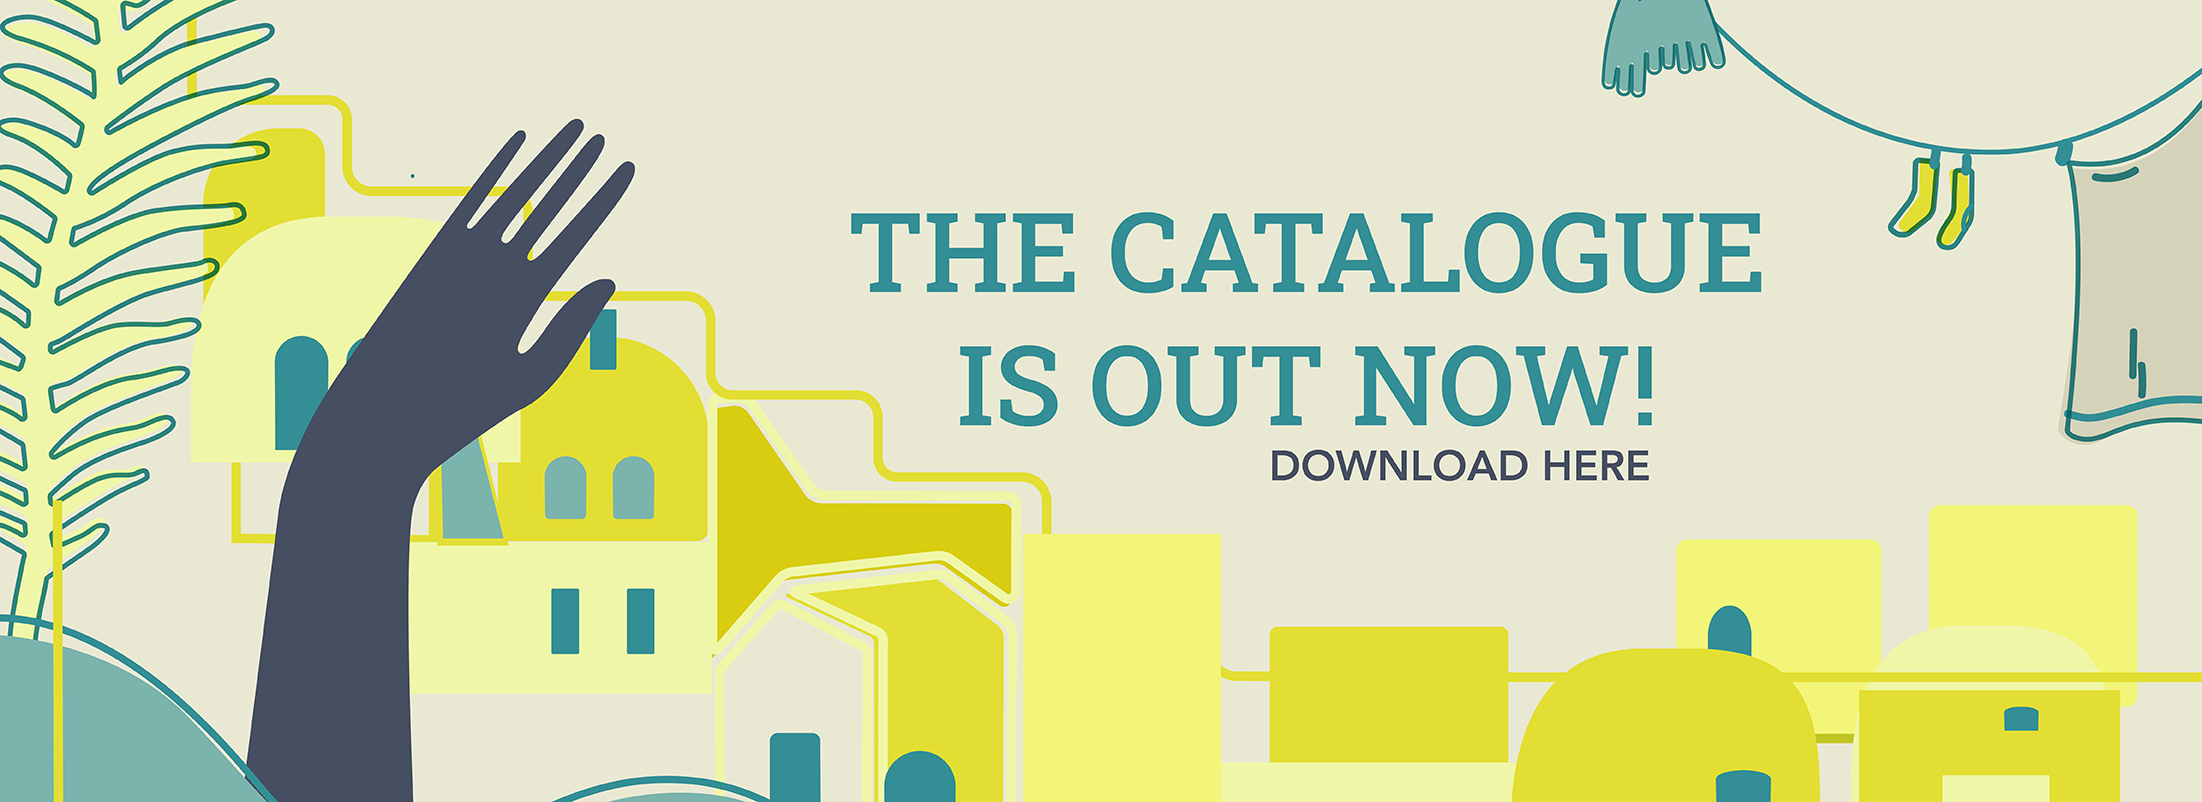 download our Catalogue!